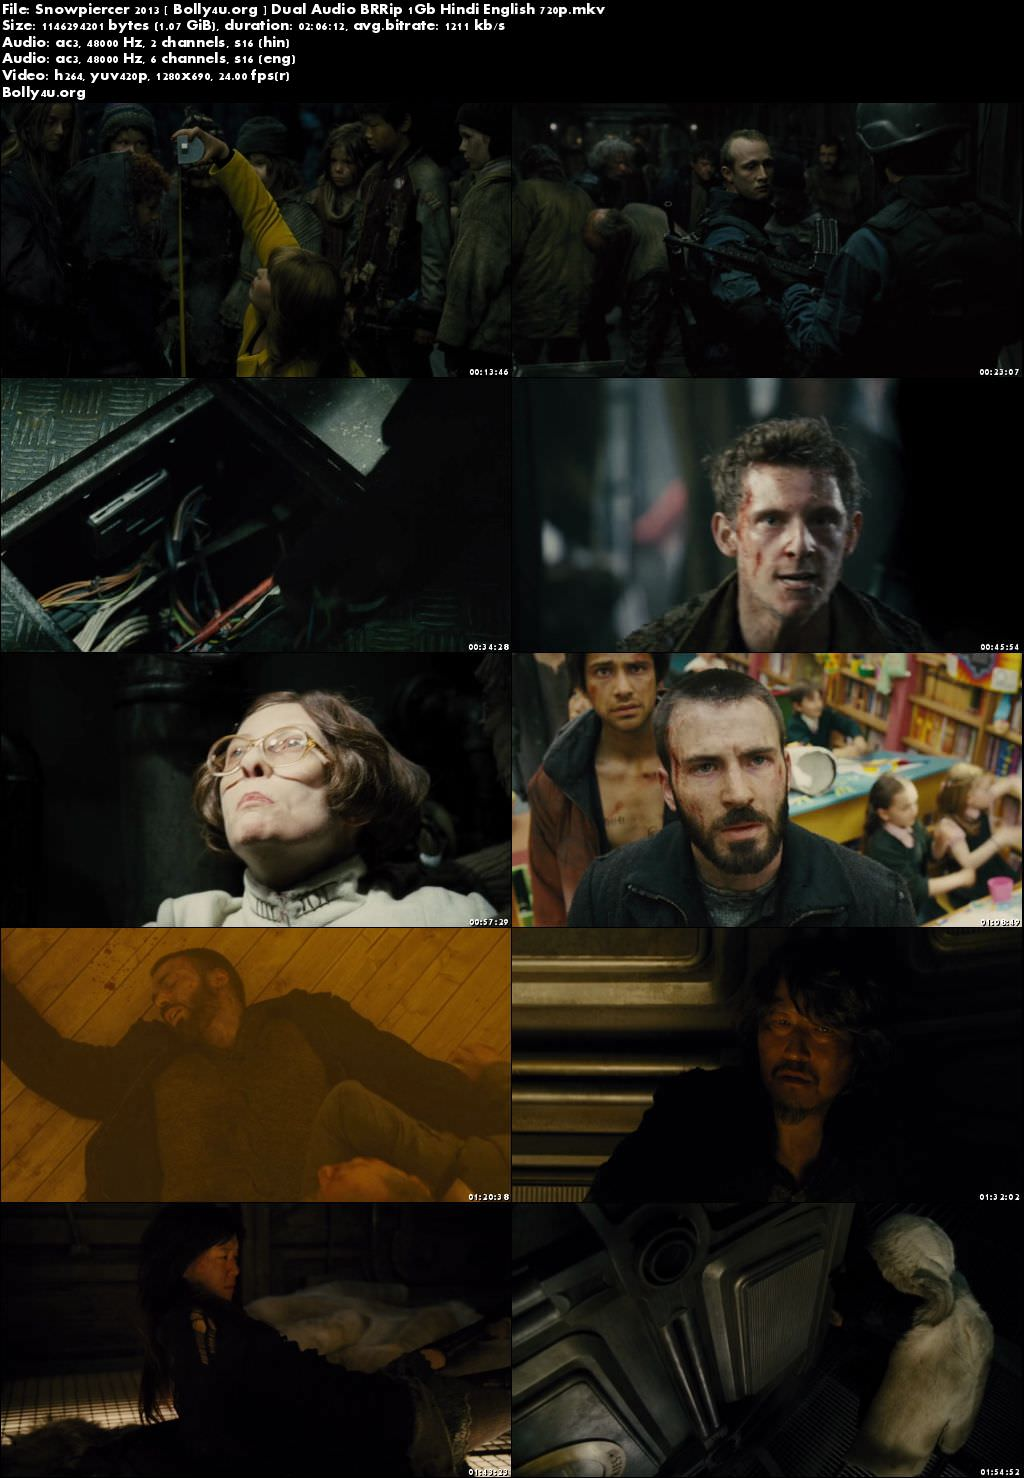 Snowpiercer 2013 BRRip 1GB Hindi Dual Audio 720p Download